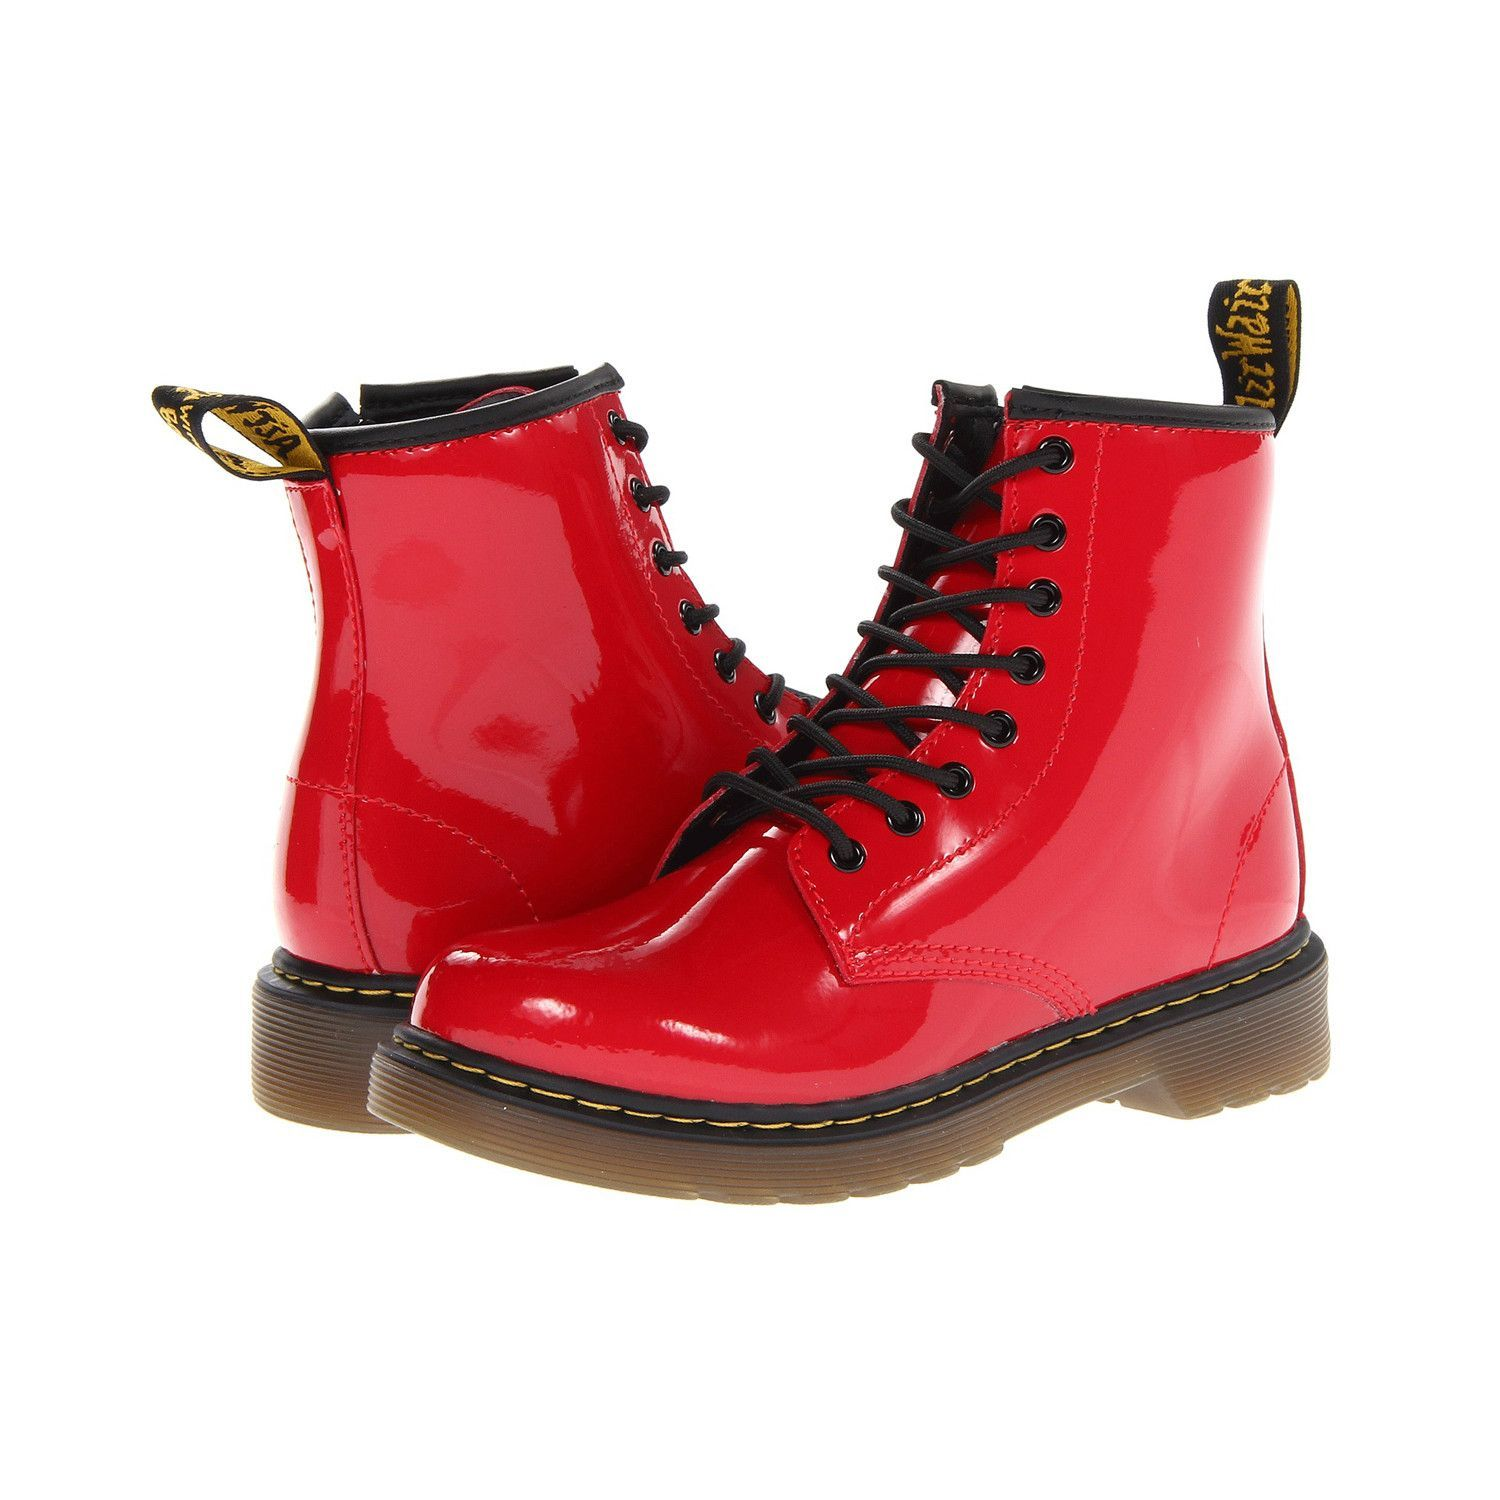 Dr Martens Delaney Patent Boots, Red at